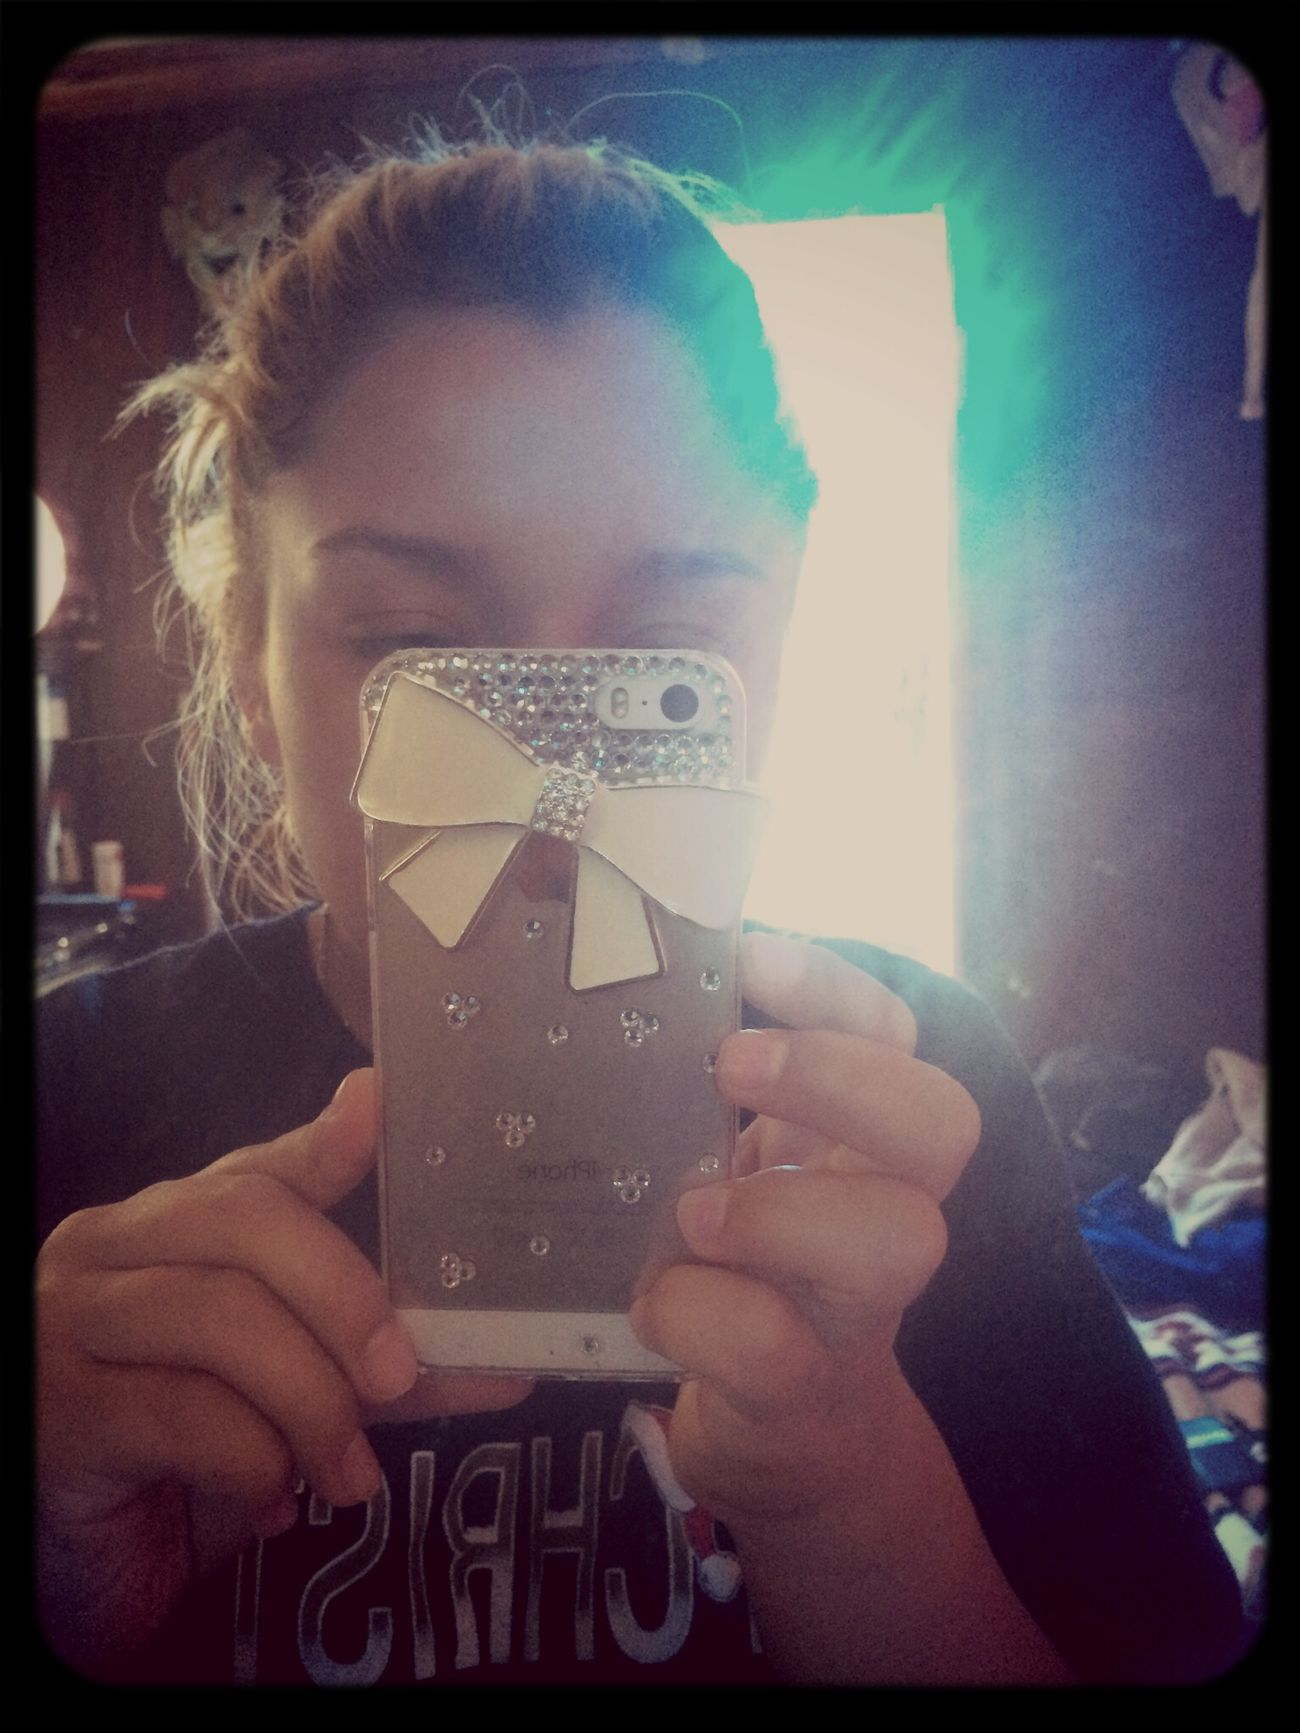 New phone case! MyOwnIngrediants